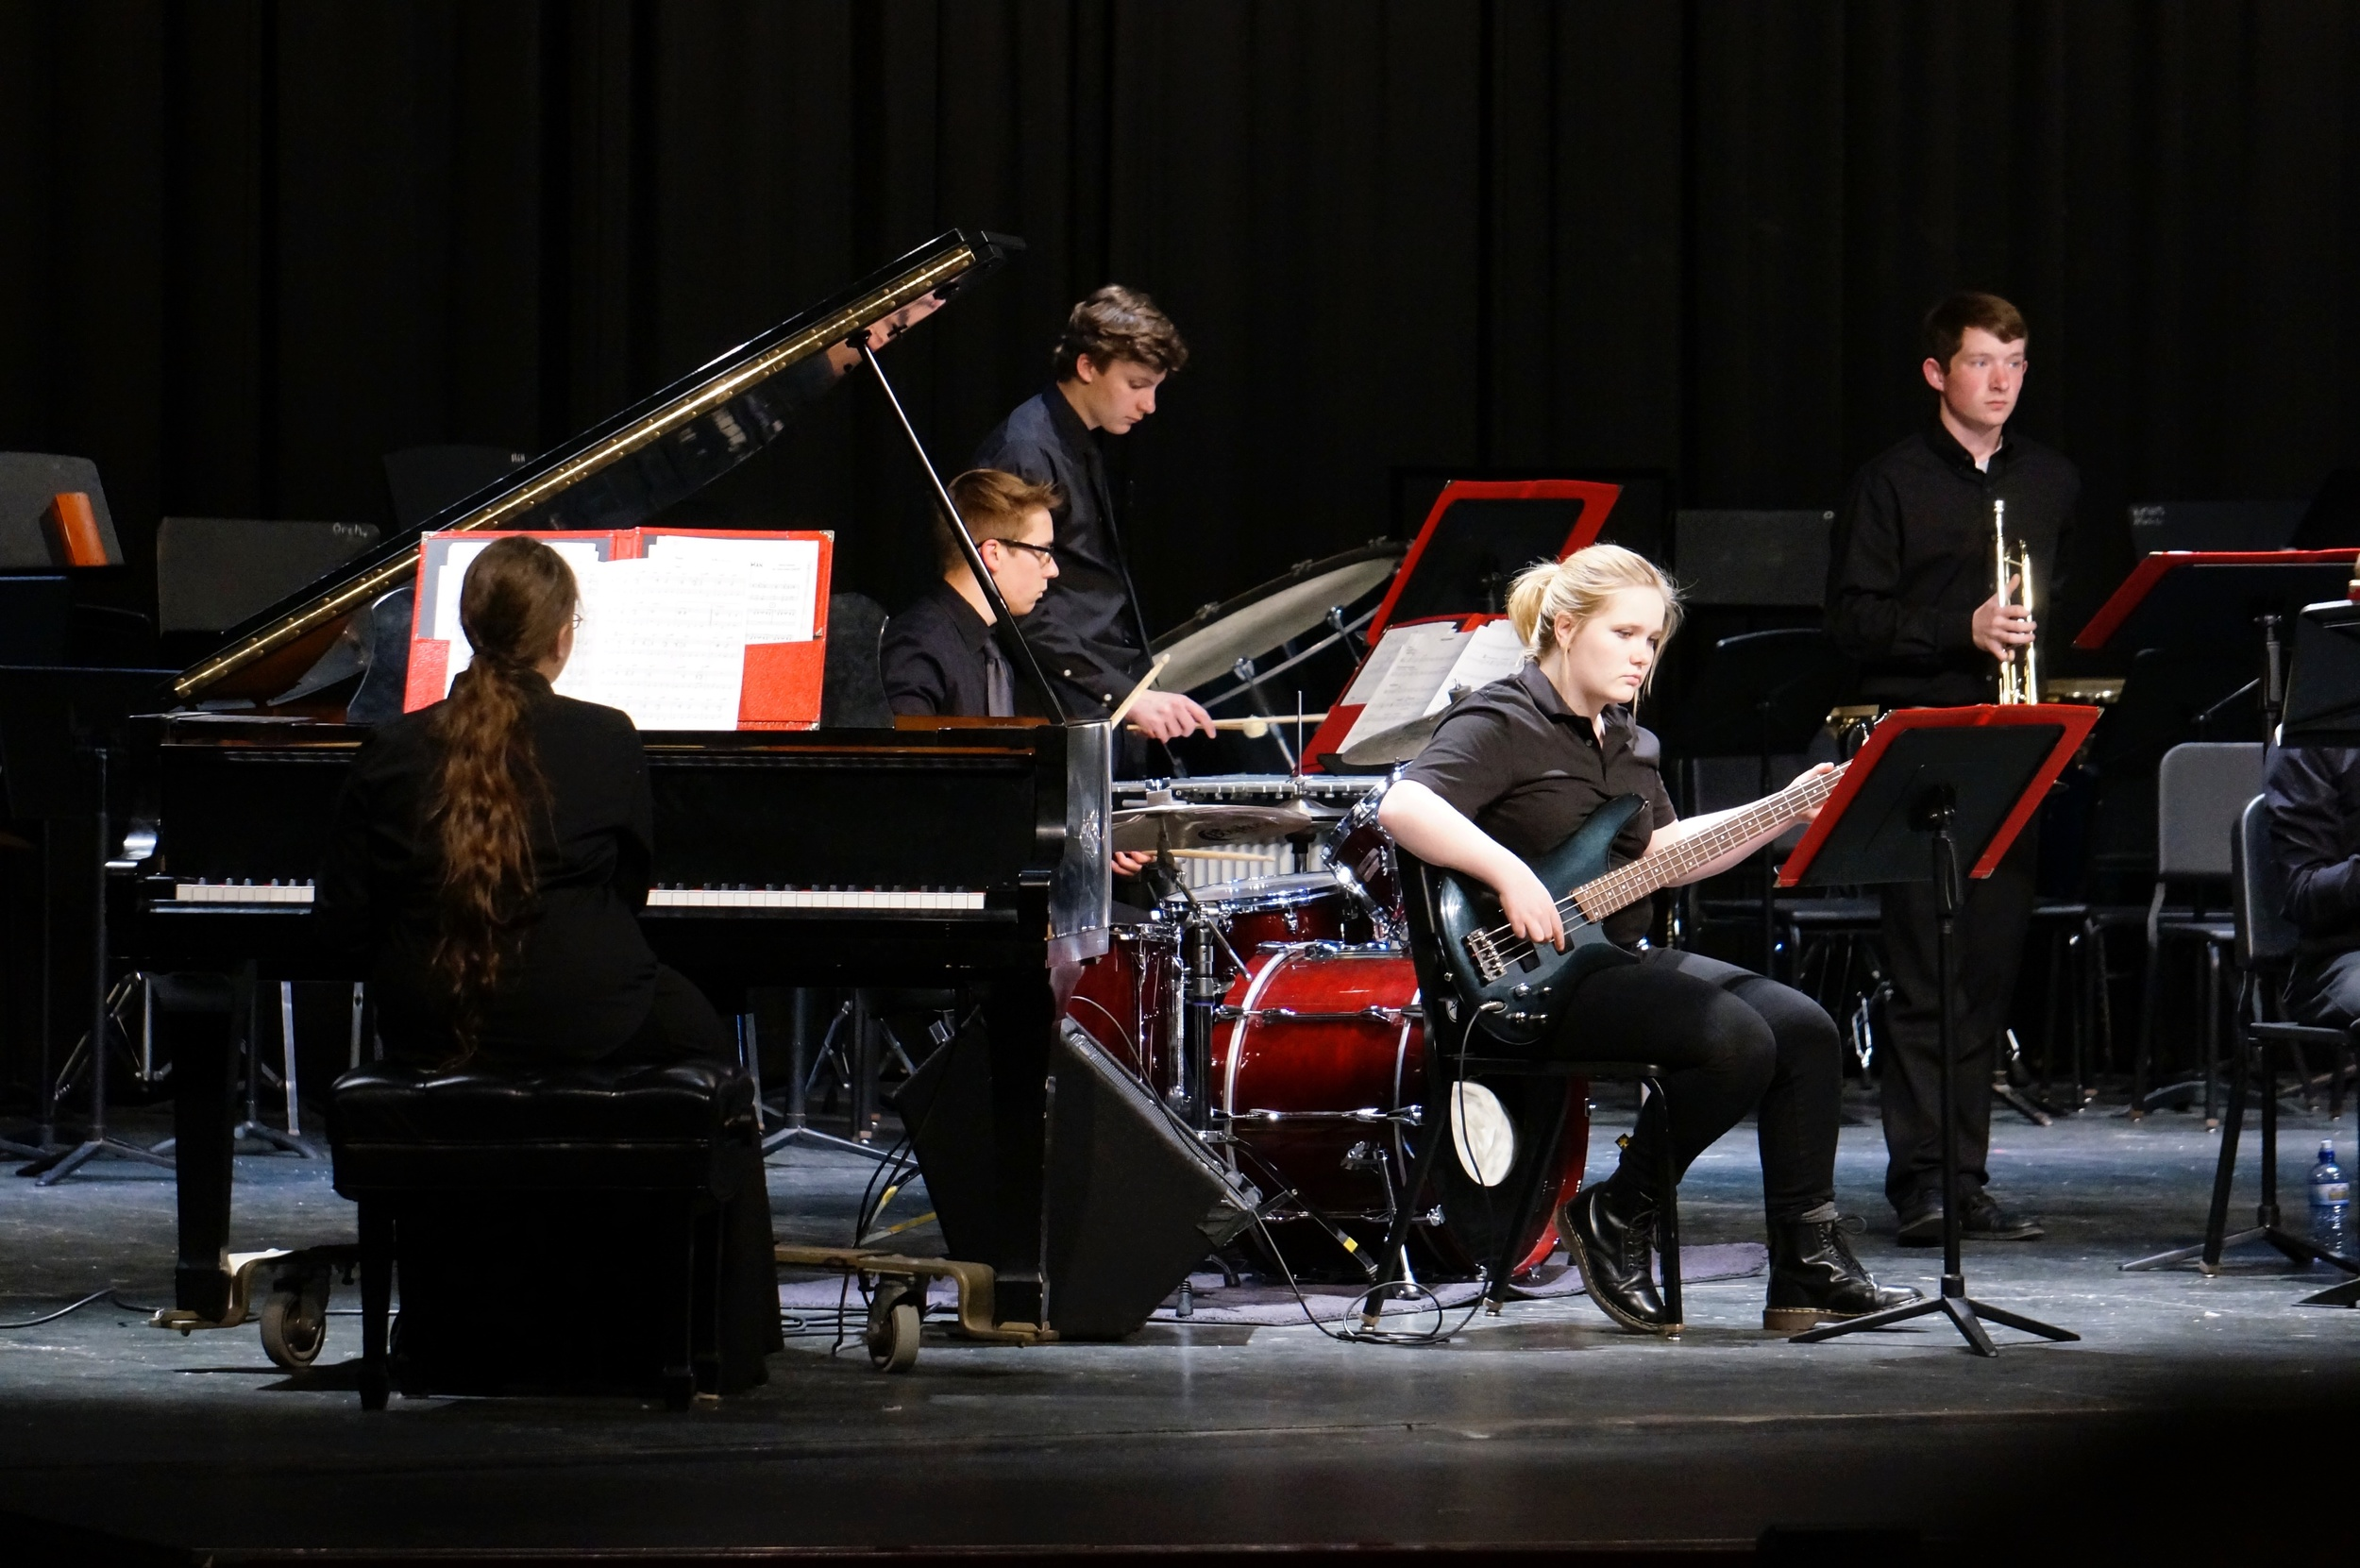 Jazz Ensemble II, director Nate Weiss